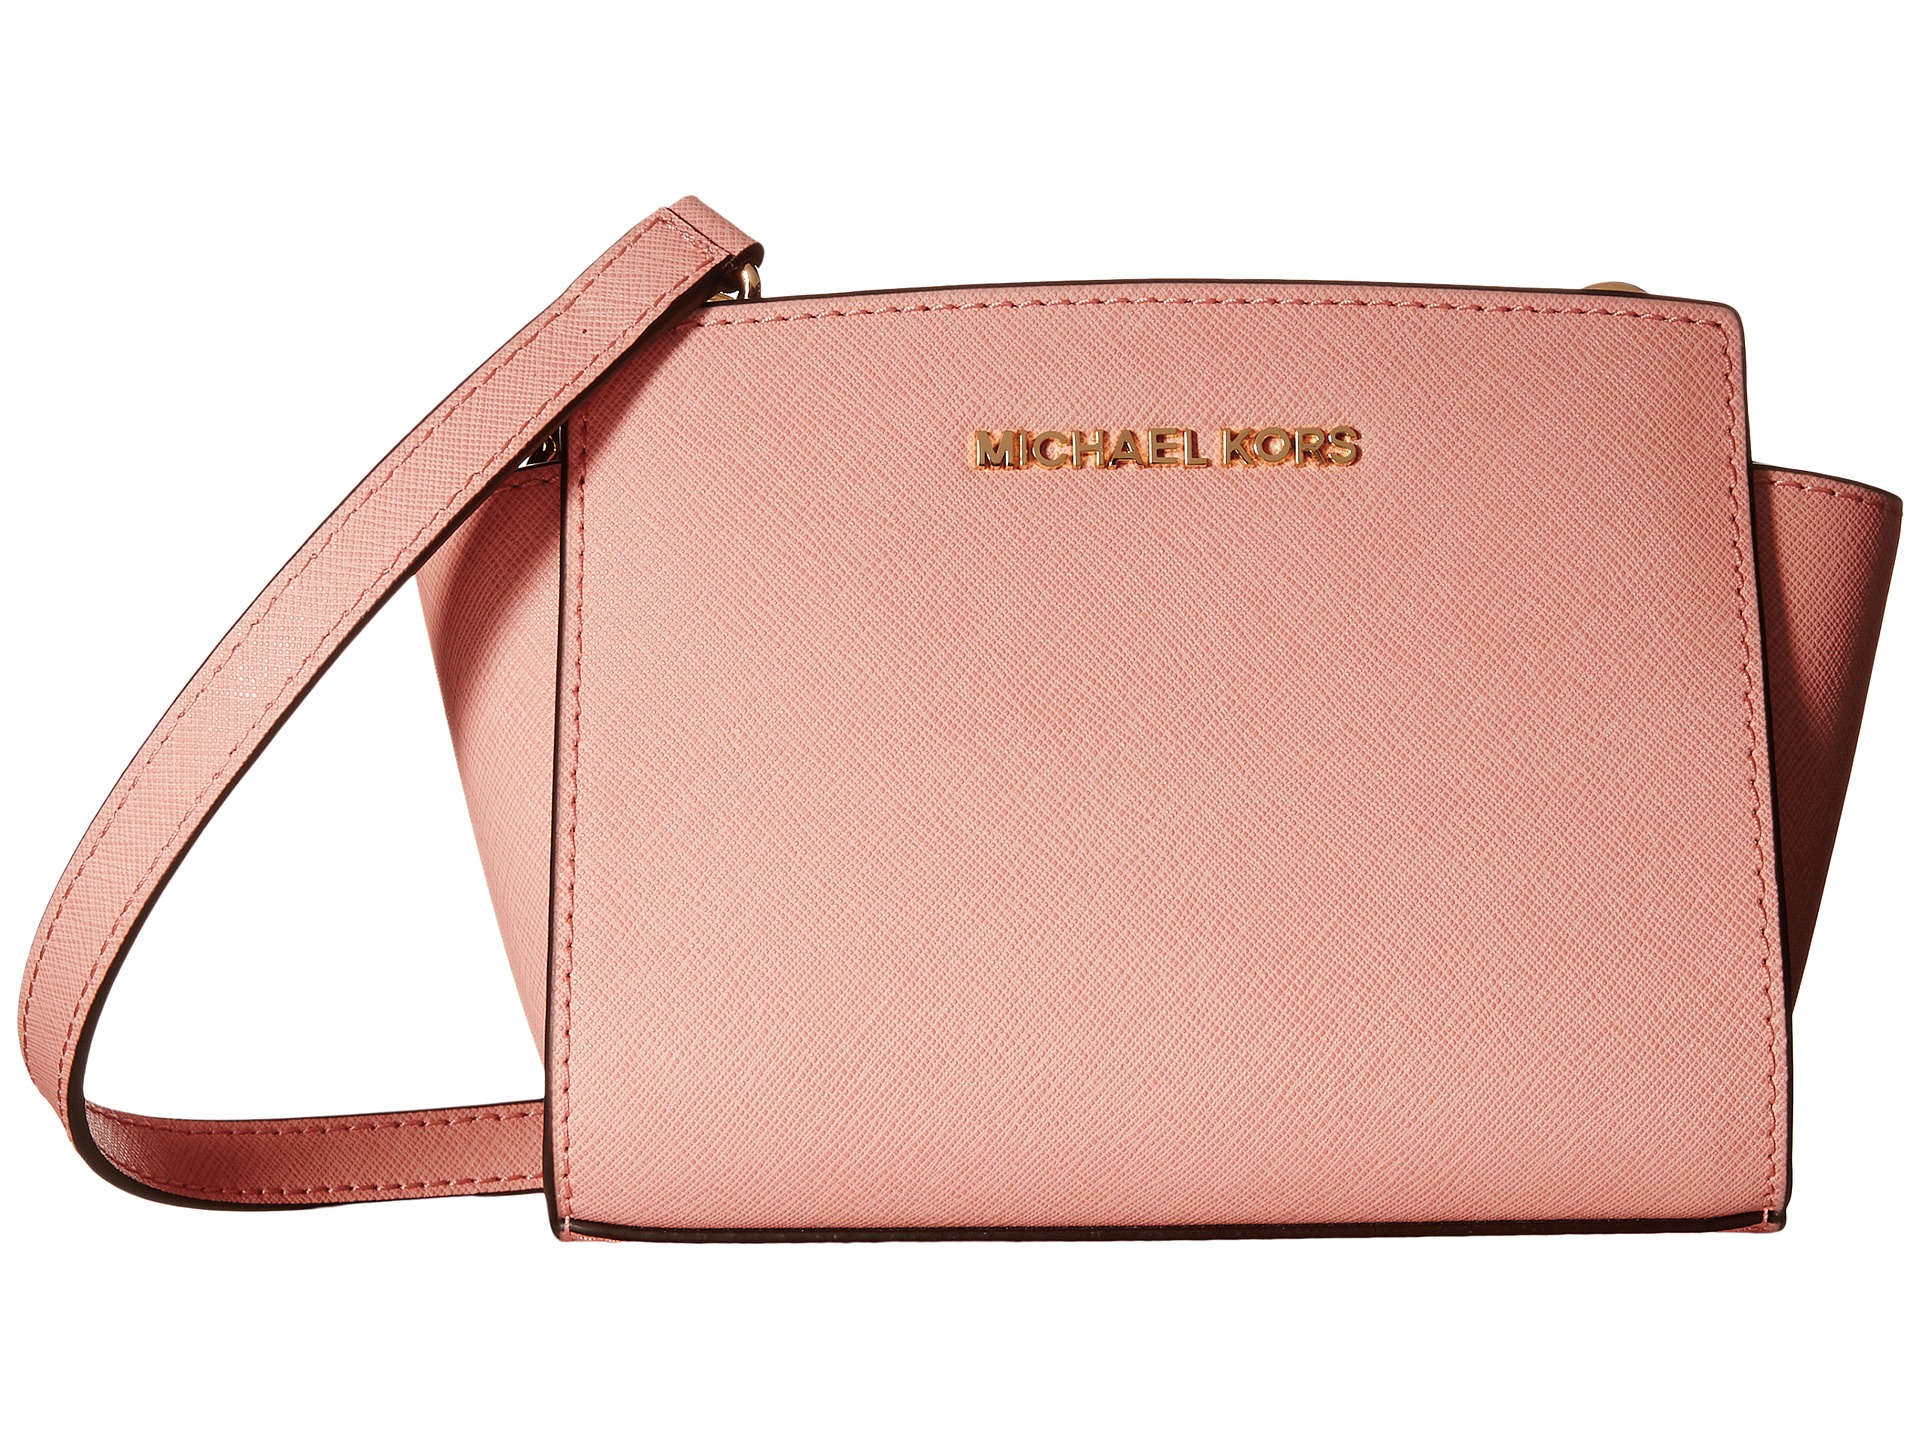 cca6cf6185602a Gallery. Previously sold at: Zappos · Women's Michael By Michael Kors Selma